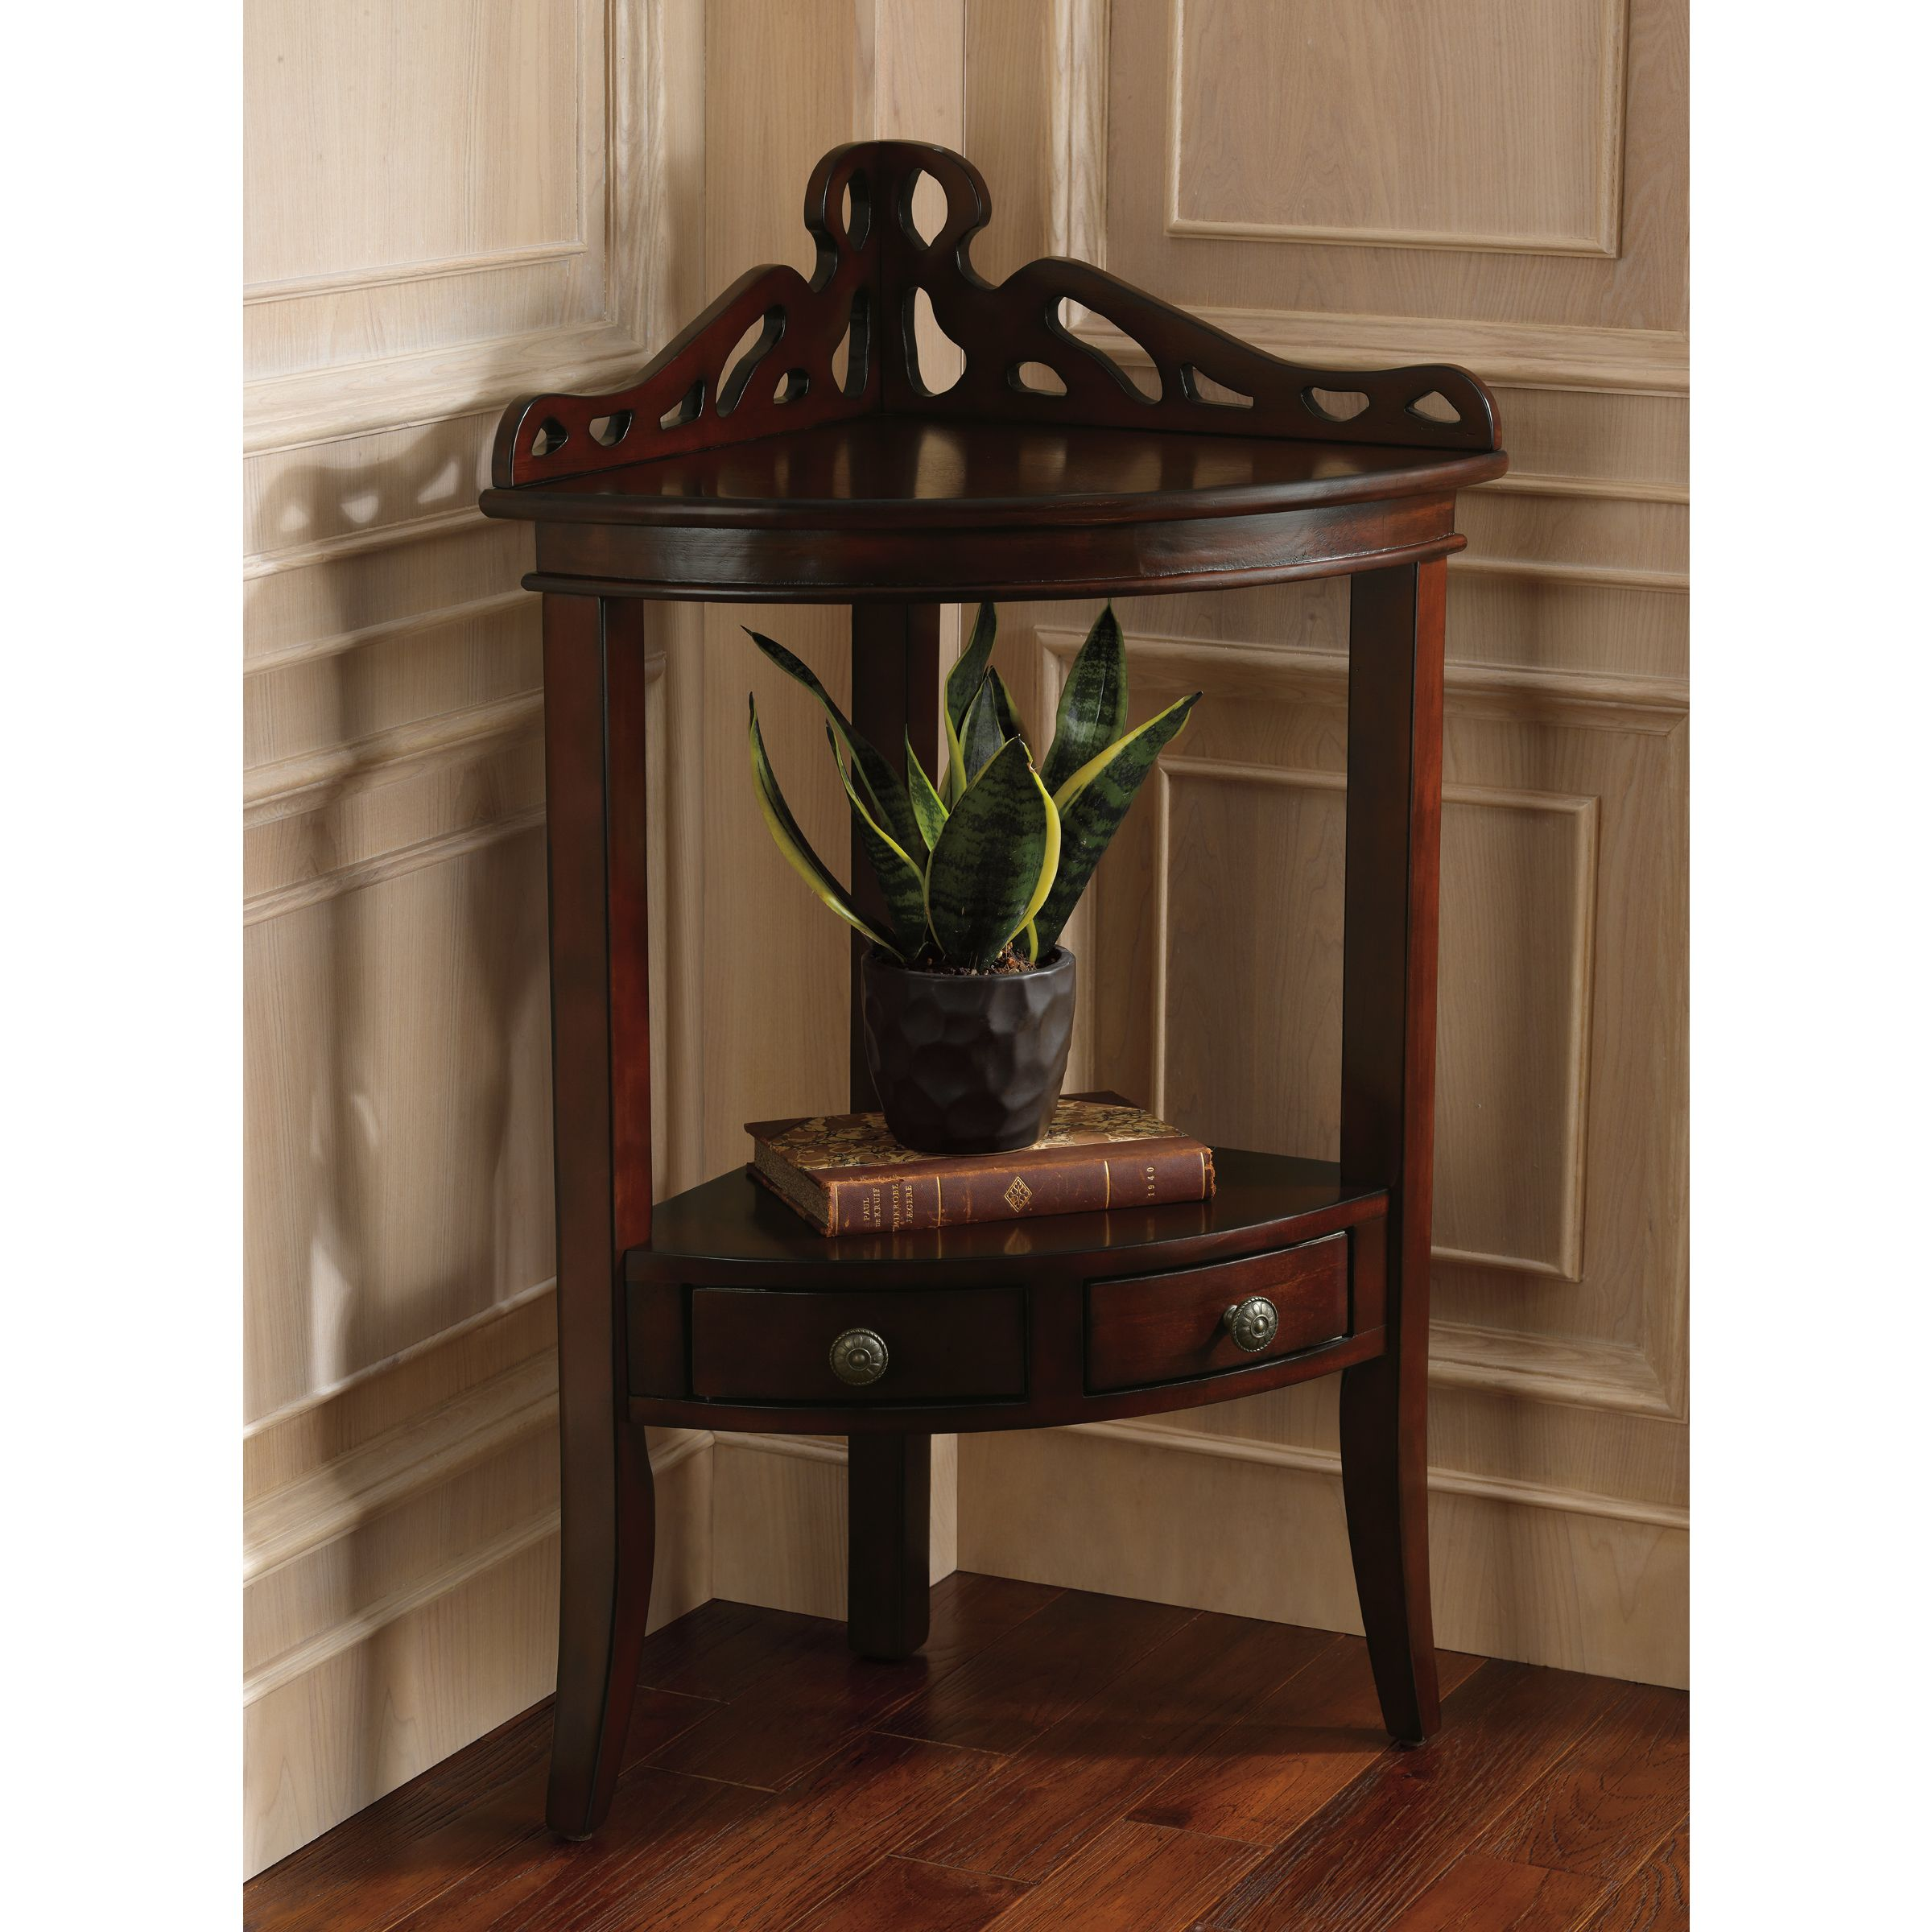 the grace corner accent table perfect piece fit elegantly bedroom tables into your entry hall living room sits flush yuma furniture square outdoor coffee mirrored dresser target